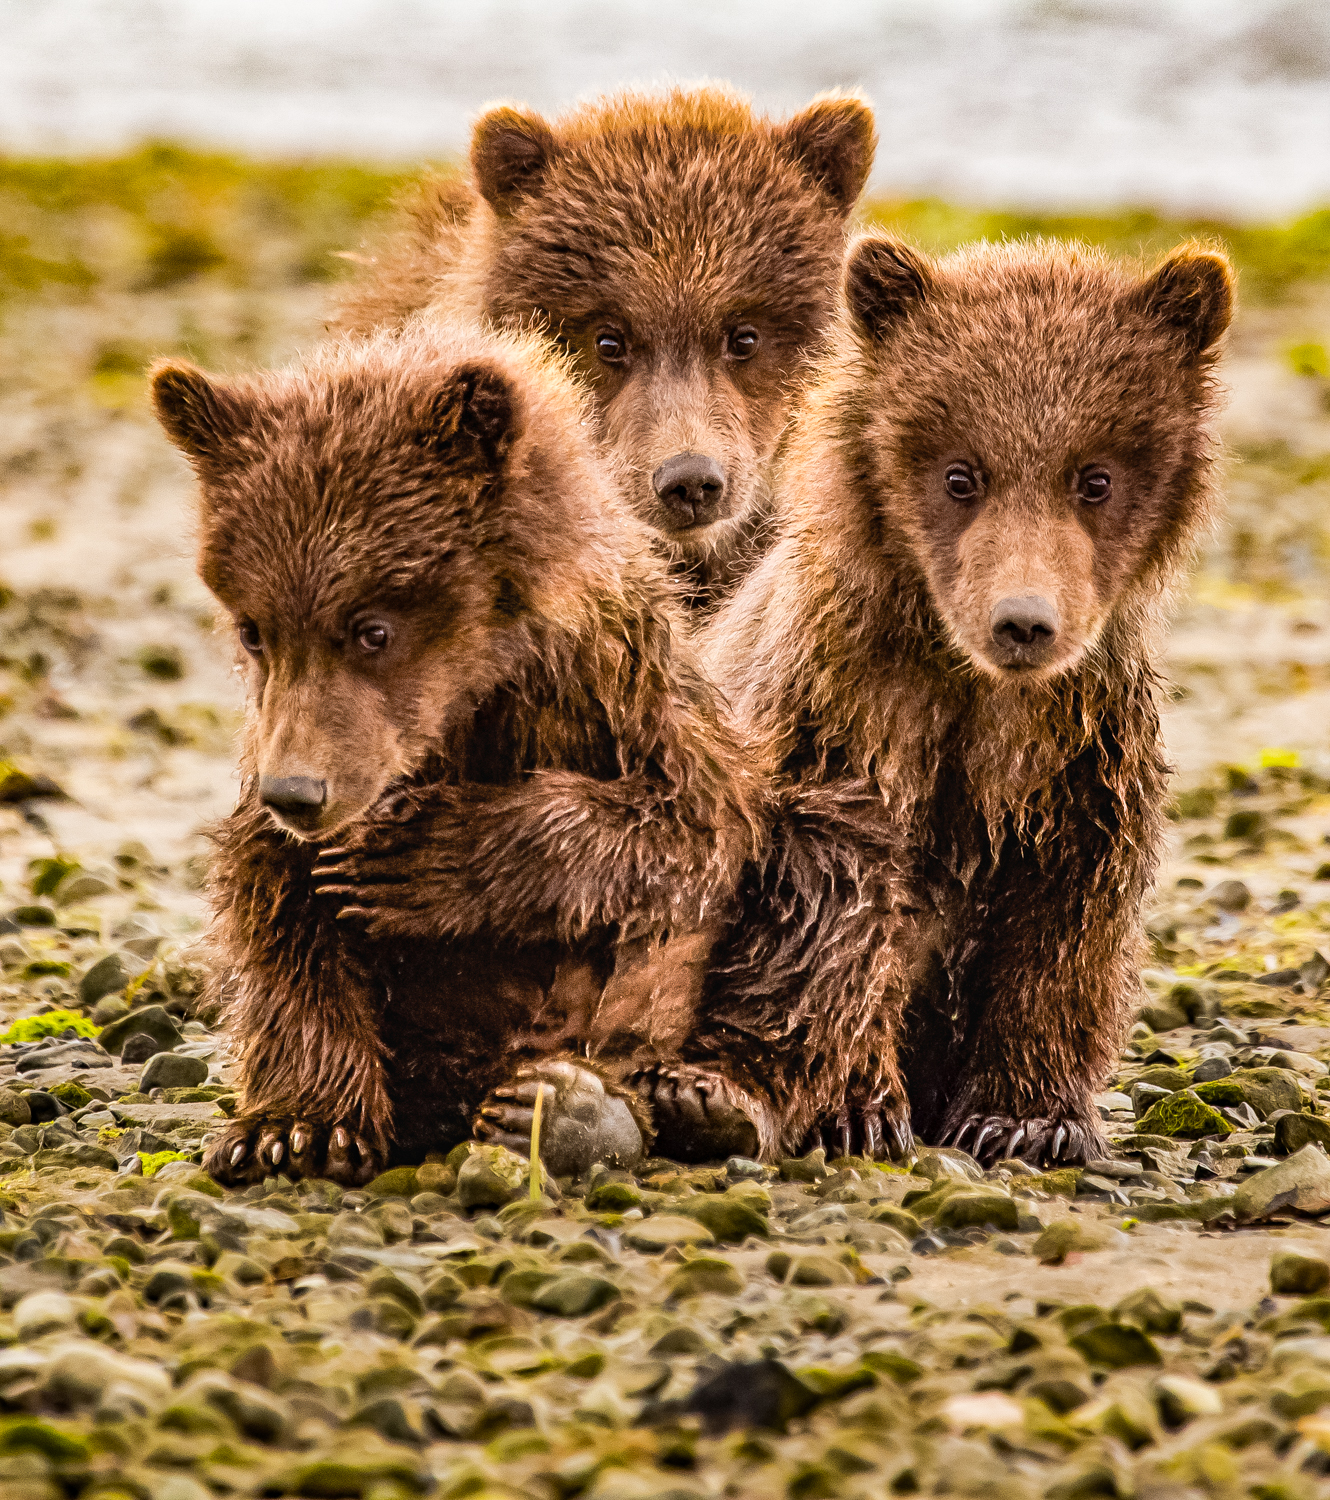 Adorable spring bear cubs.